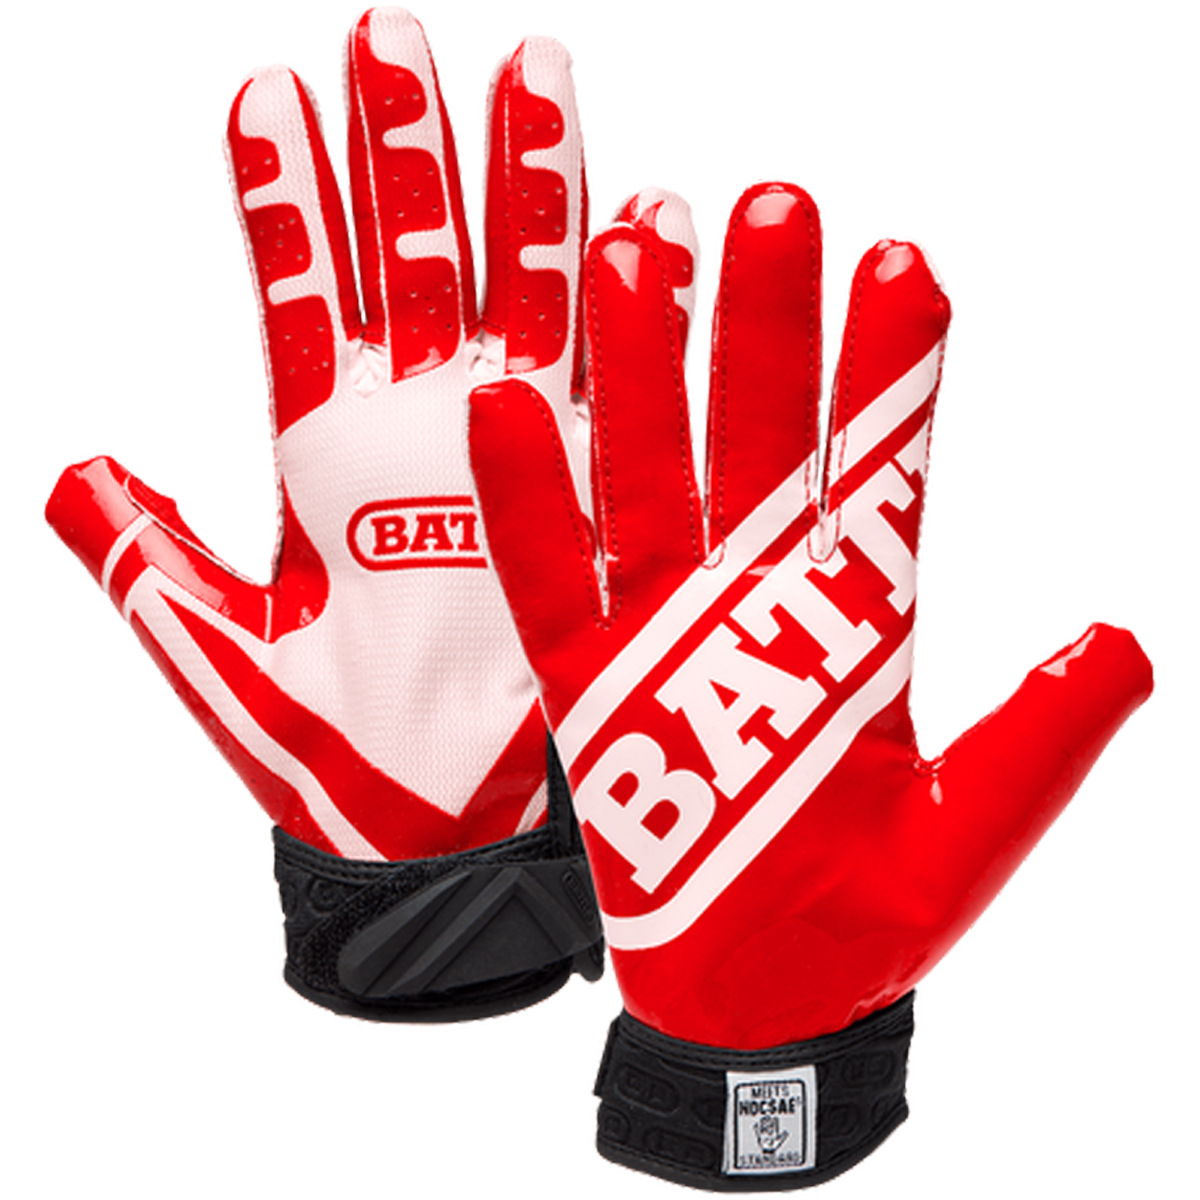 Details about Battle Sports Science Receivers Ultra-Stick Football Gloves -  Red White c38904b1c6b7